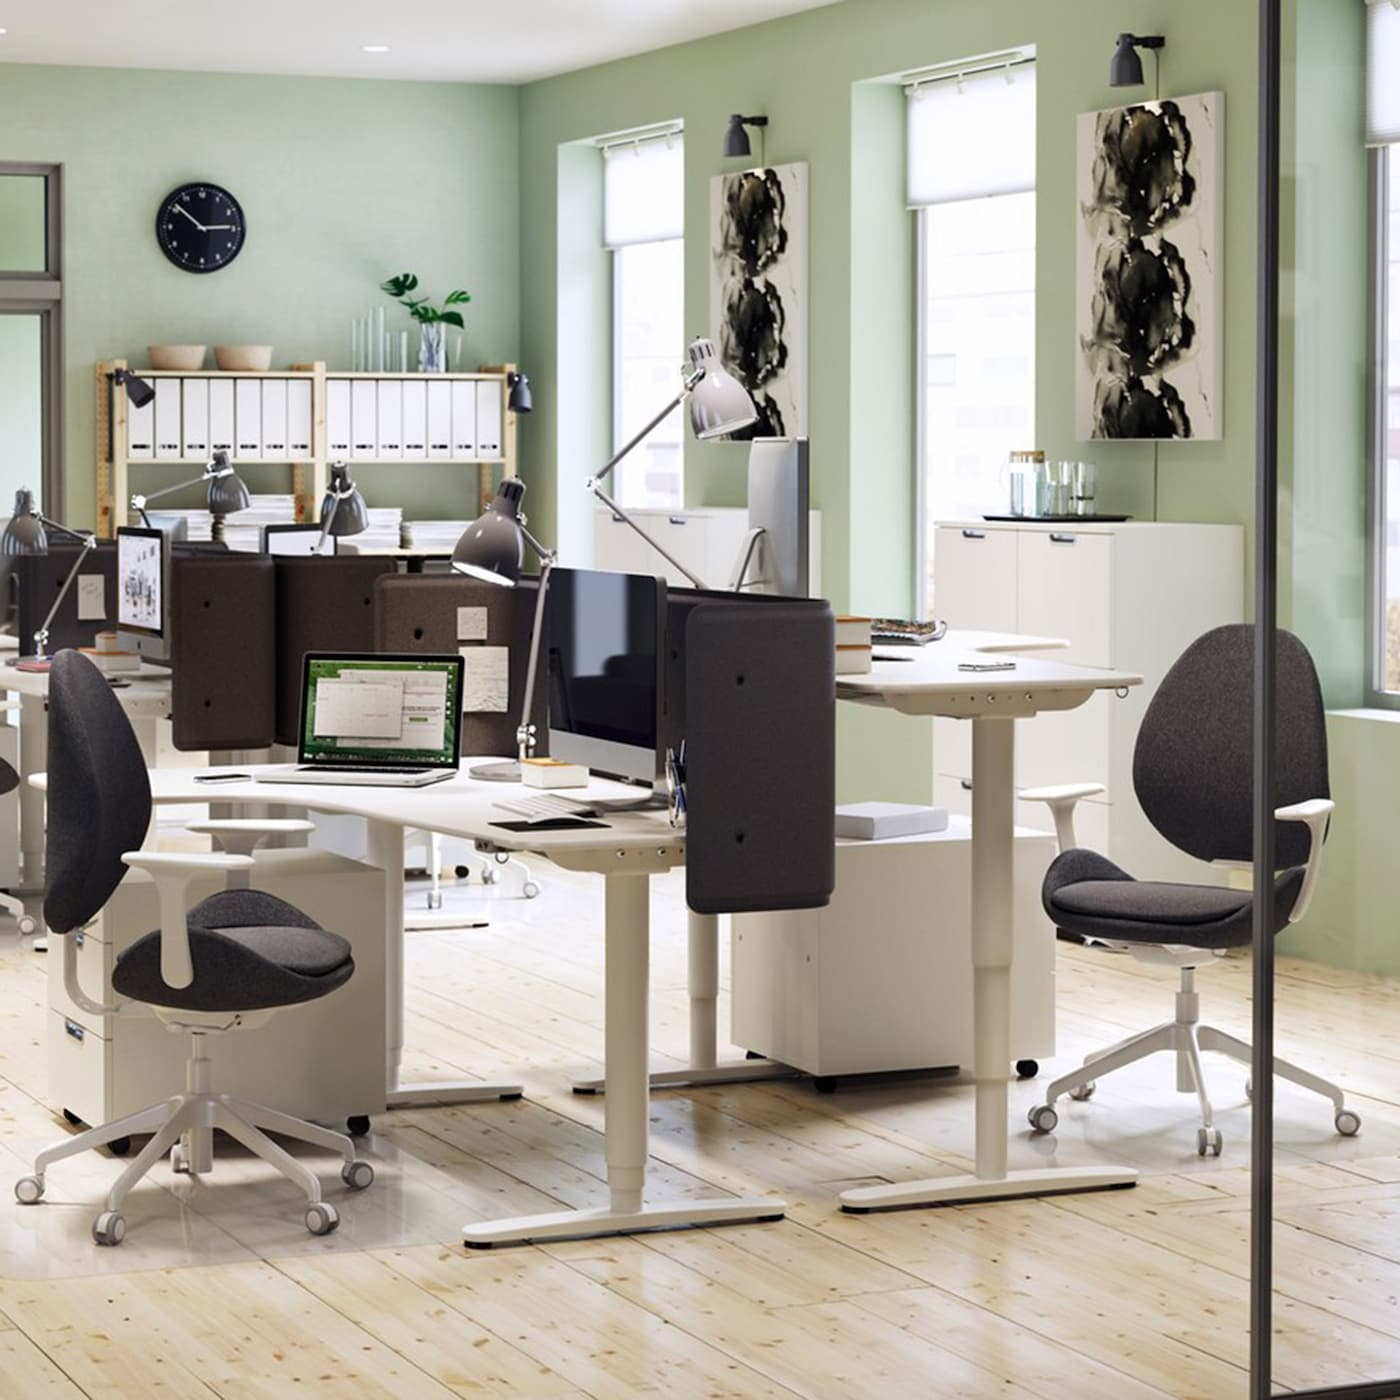 A modernly furnished office environment with light green walls and white IKEA BEKANT adjustable corner desks.